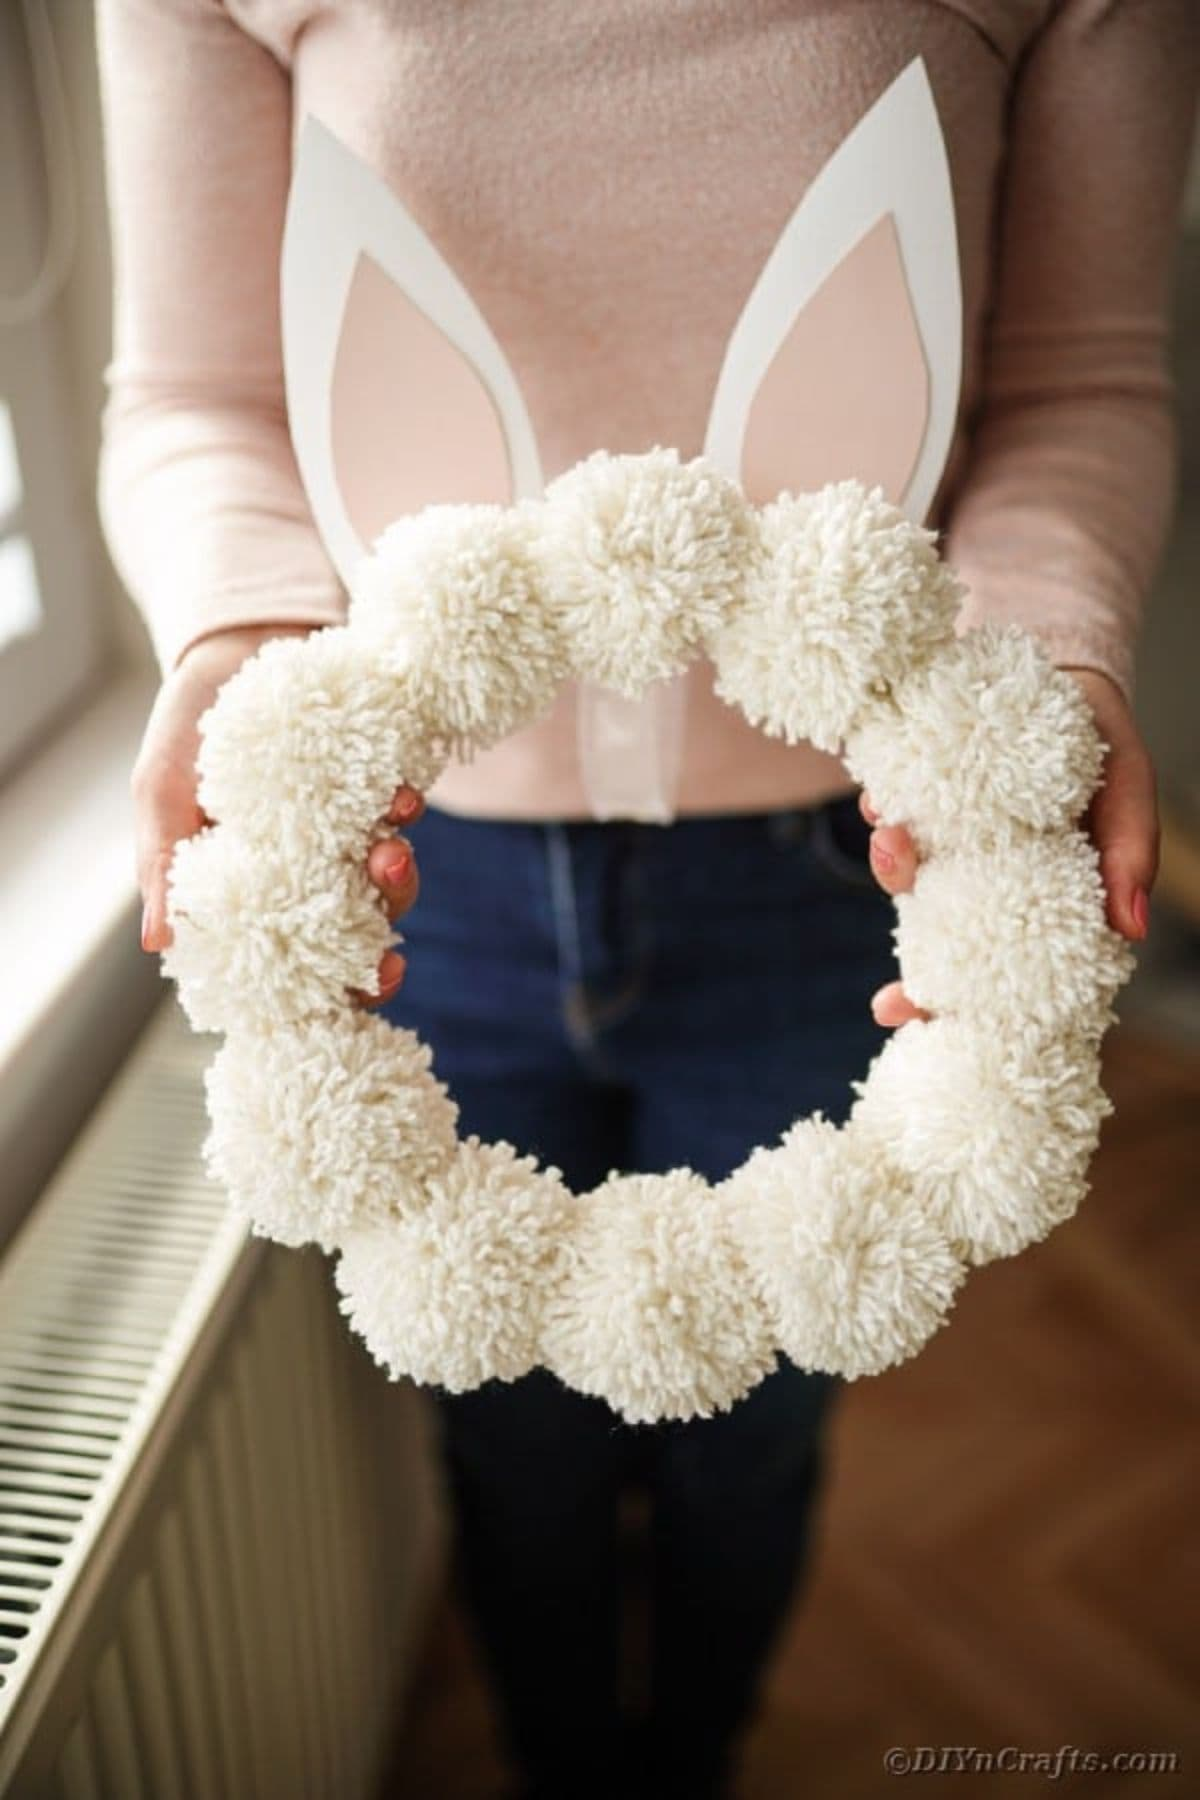 a woman in a white top and blue jeans is holding a wreath made of white pom poms with white bunny ears on the top